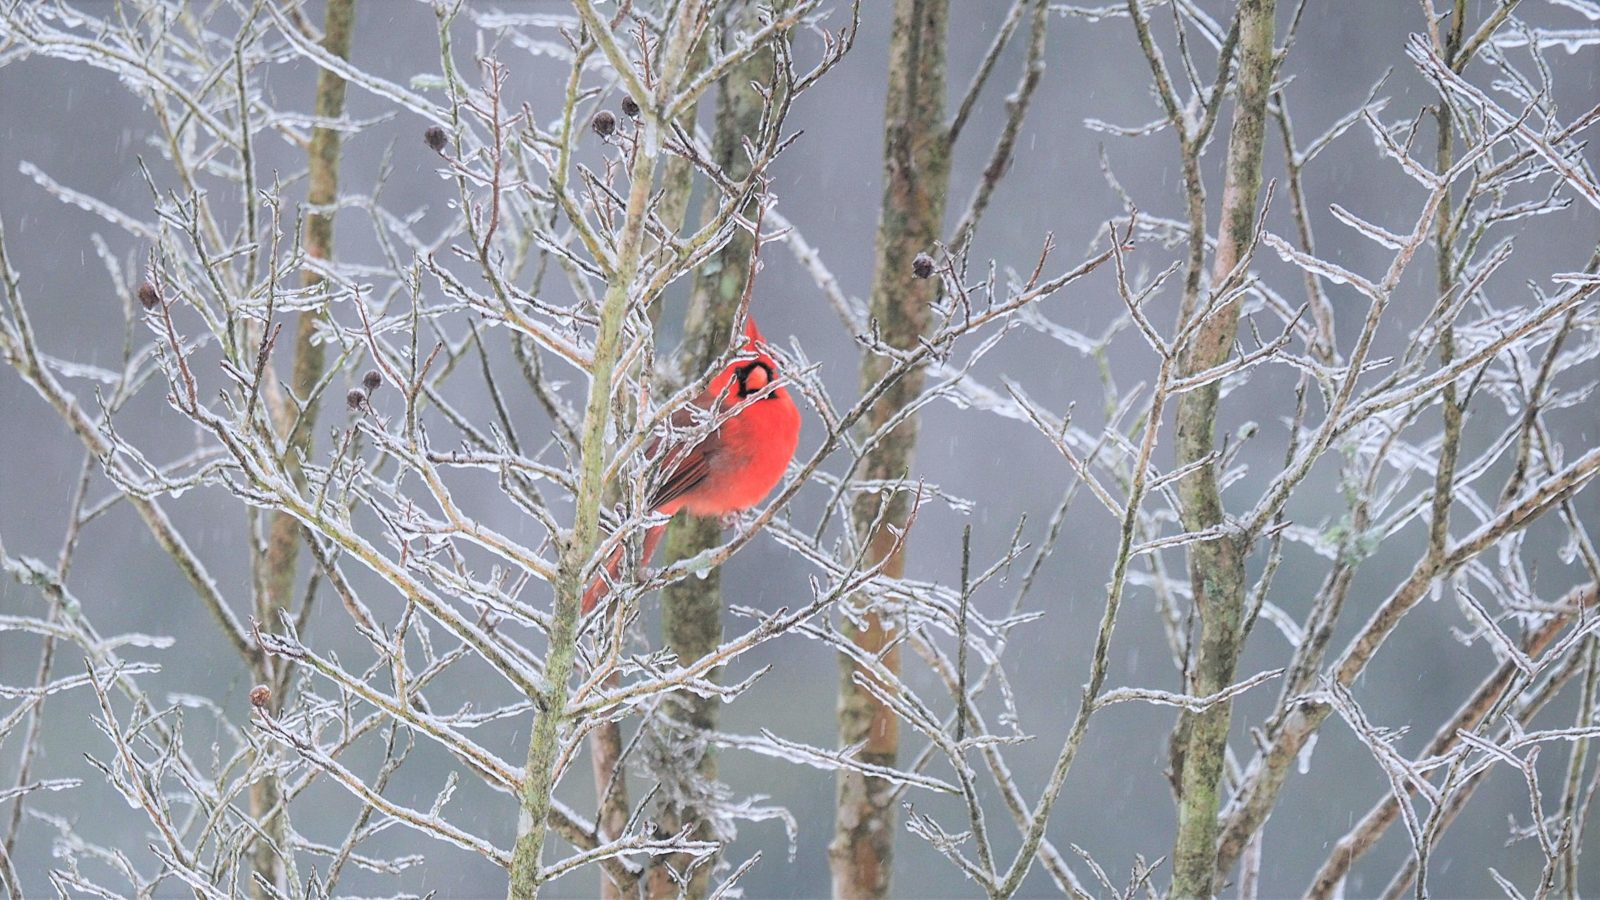 Male Cardinal in the ice.